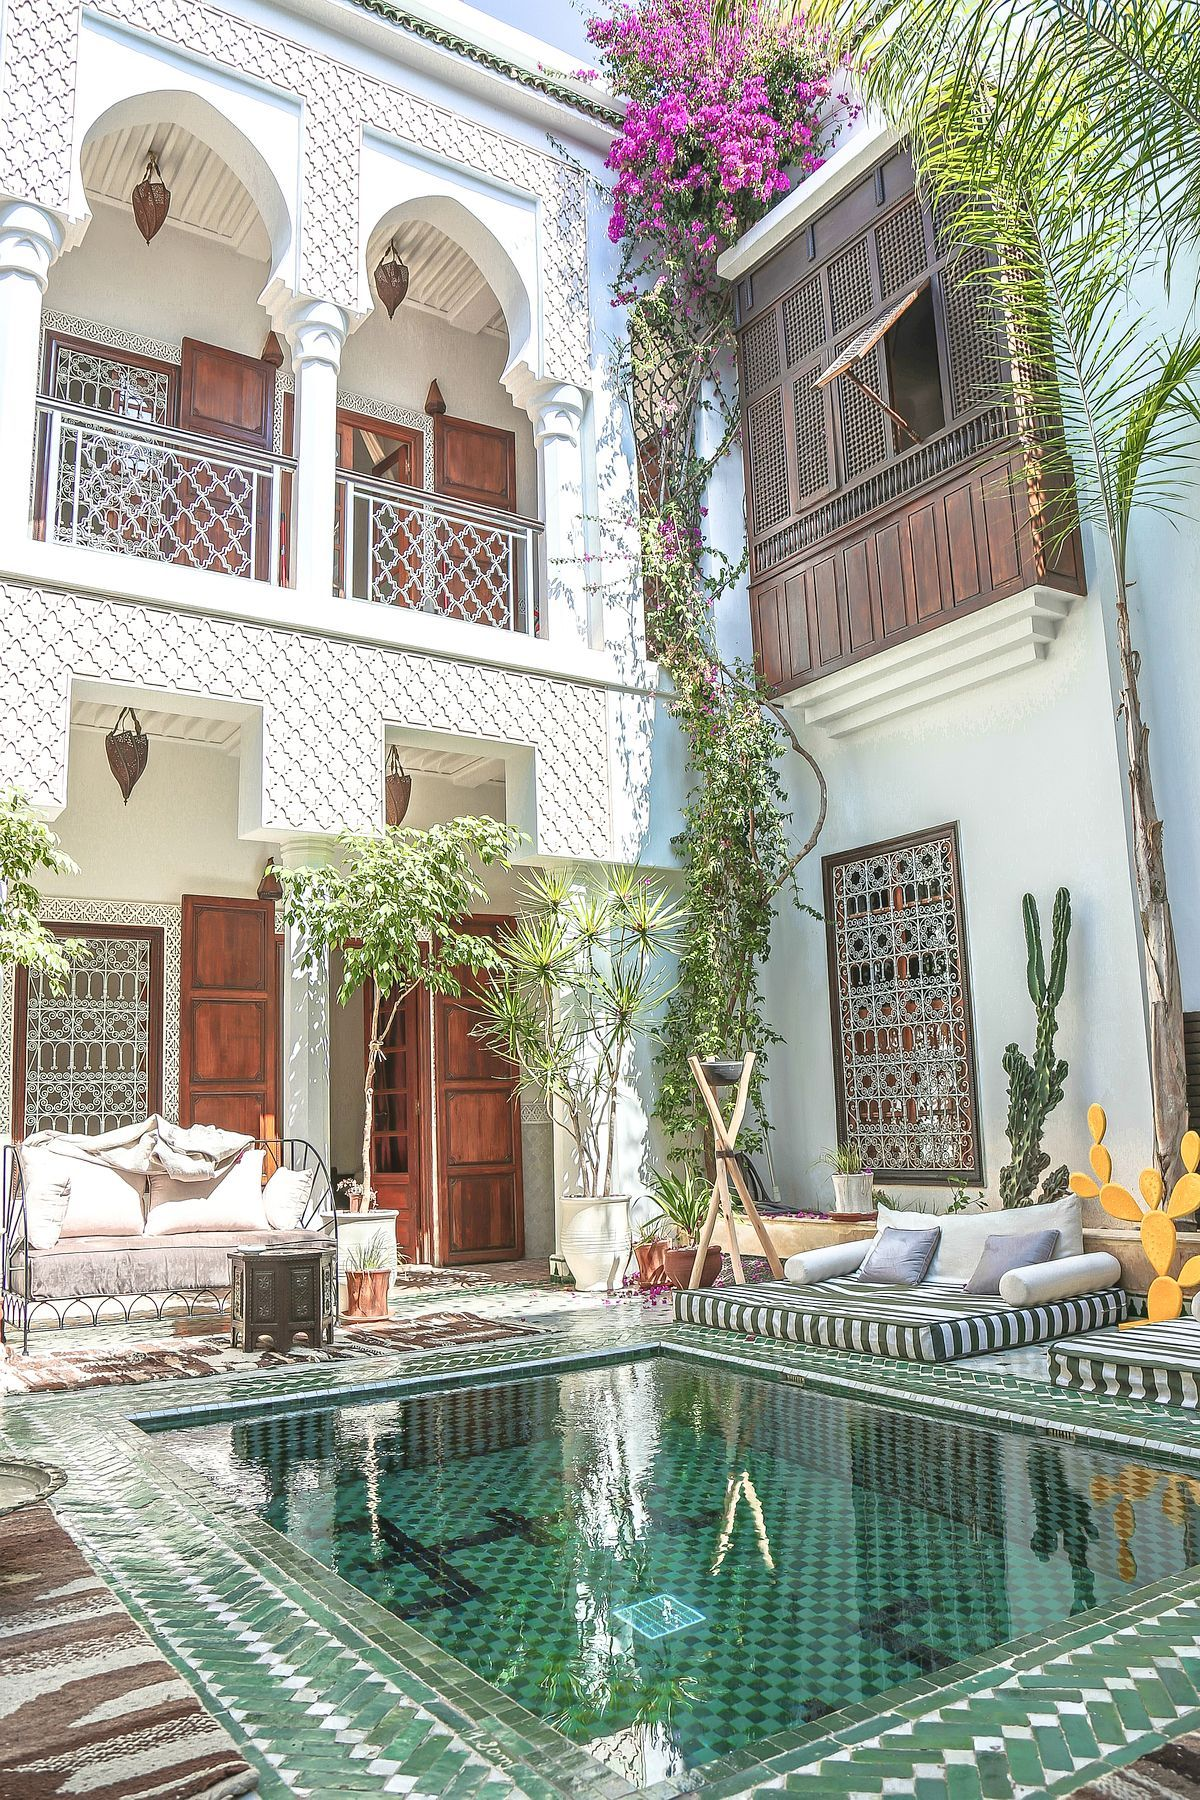 Marrakech's Riad Yasmine Is an Insta-Worthy Escape from Everyday Life